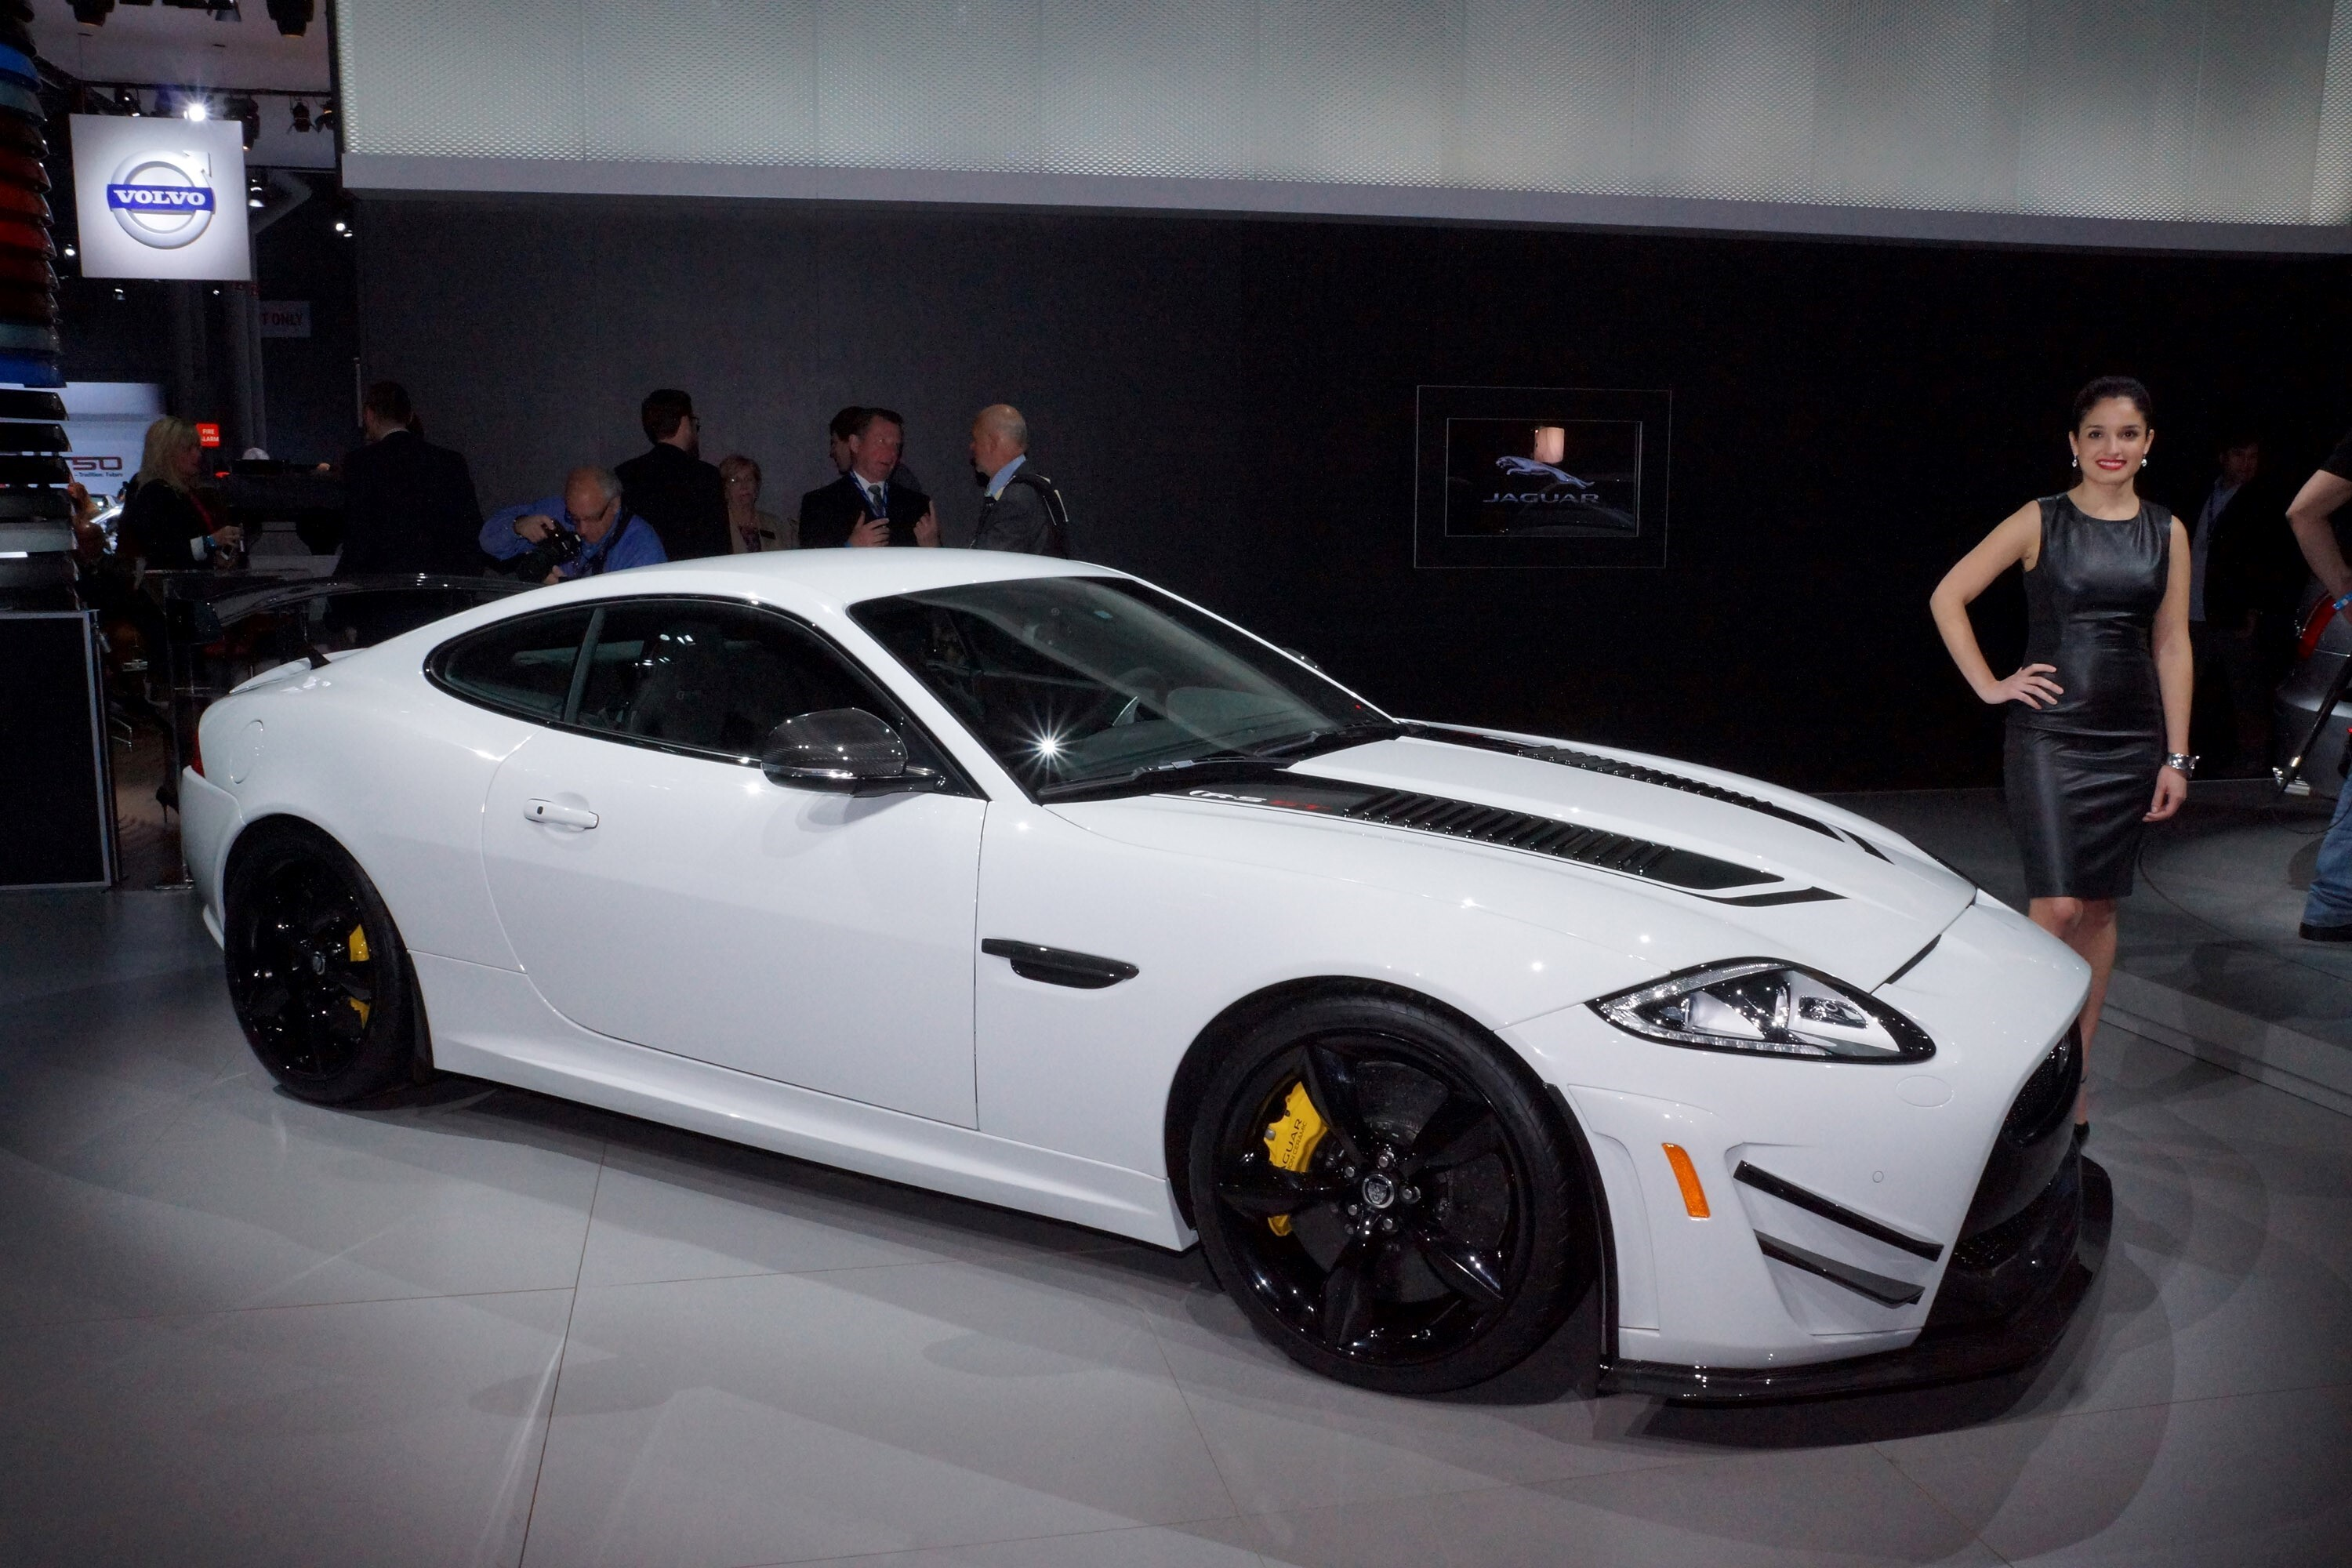 beautiful latest new 2013 white jaguar xkr s gt luxury 2 seater car